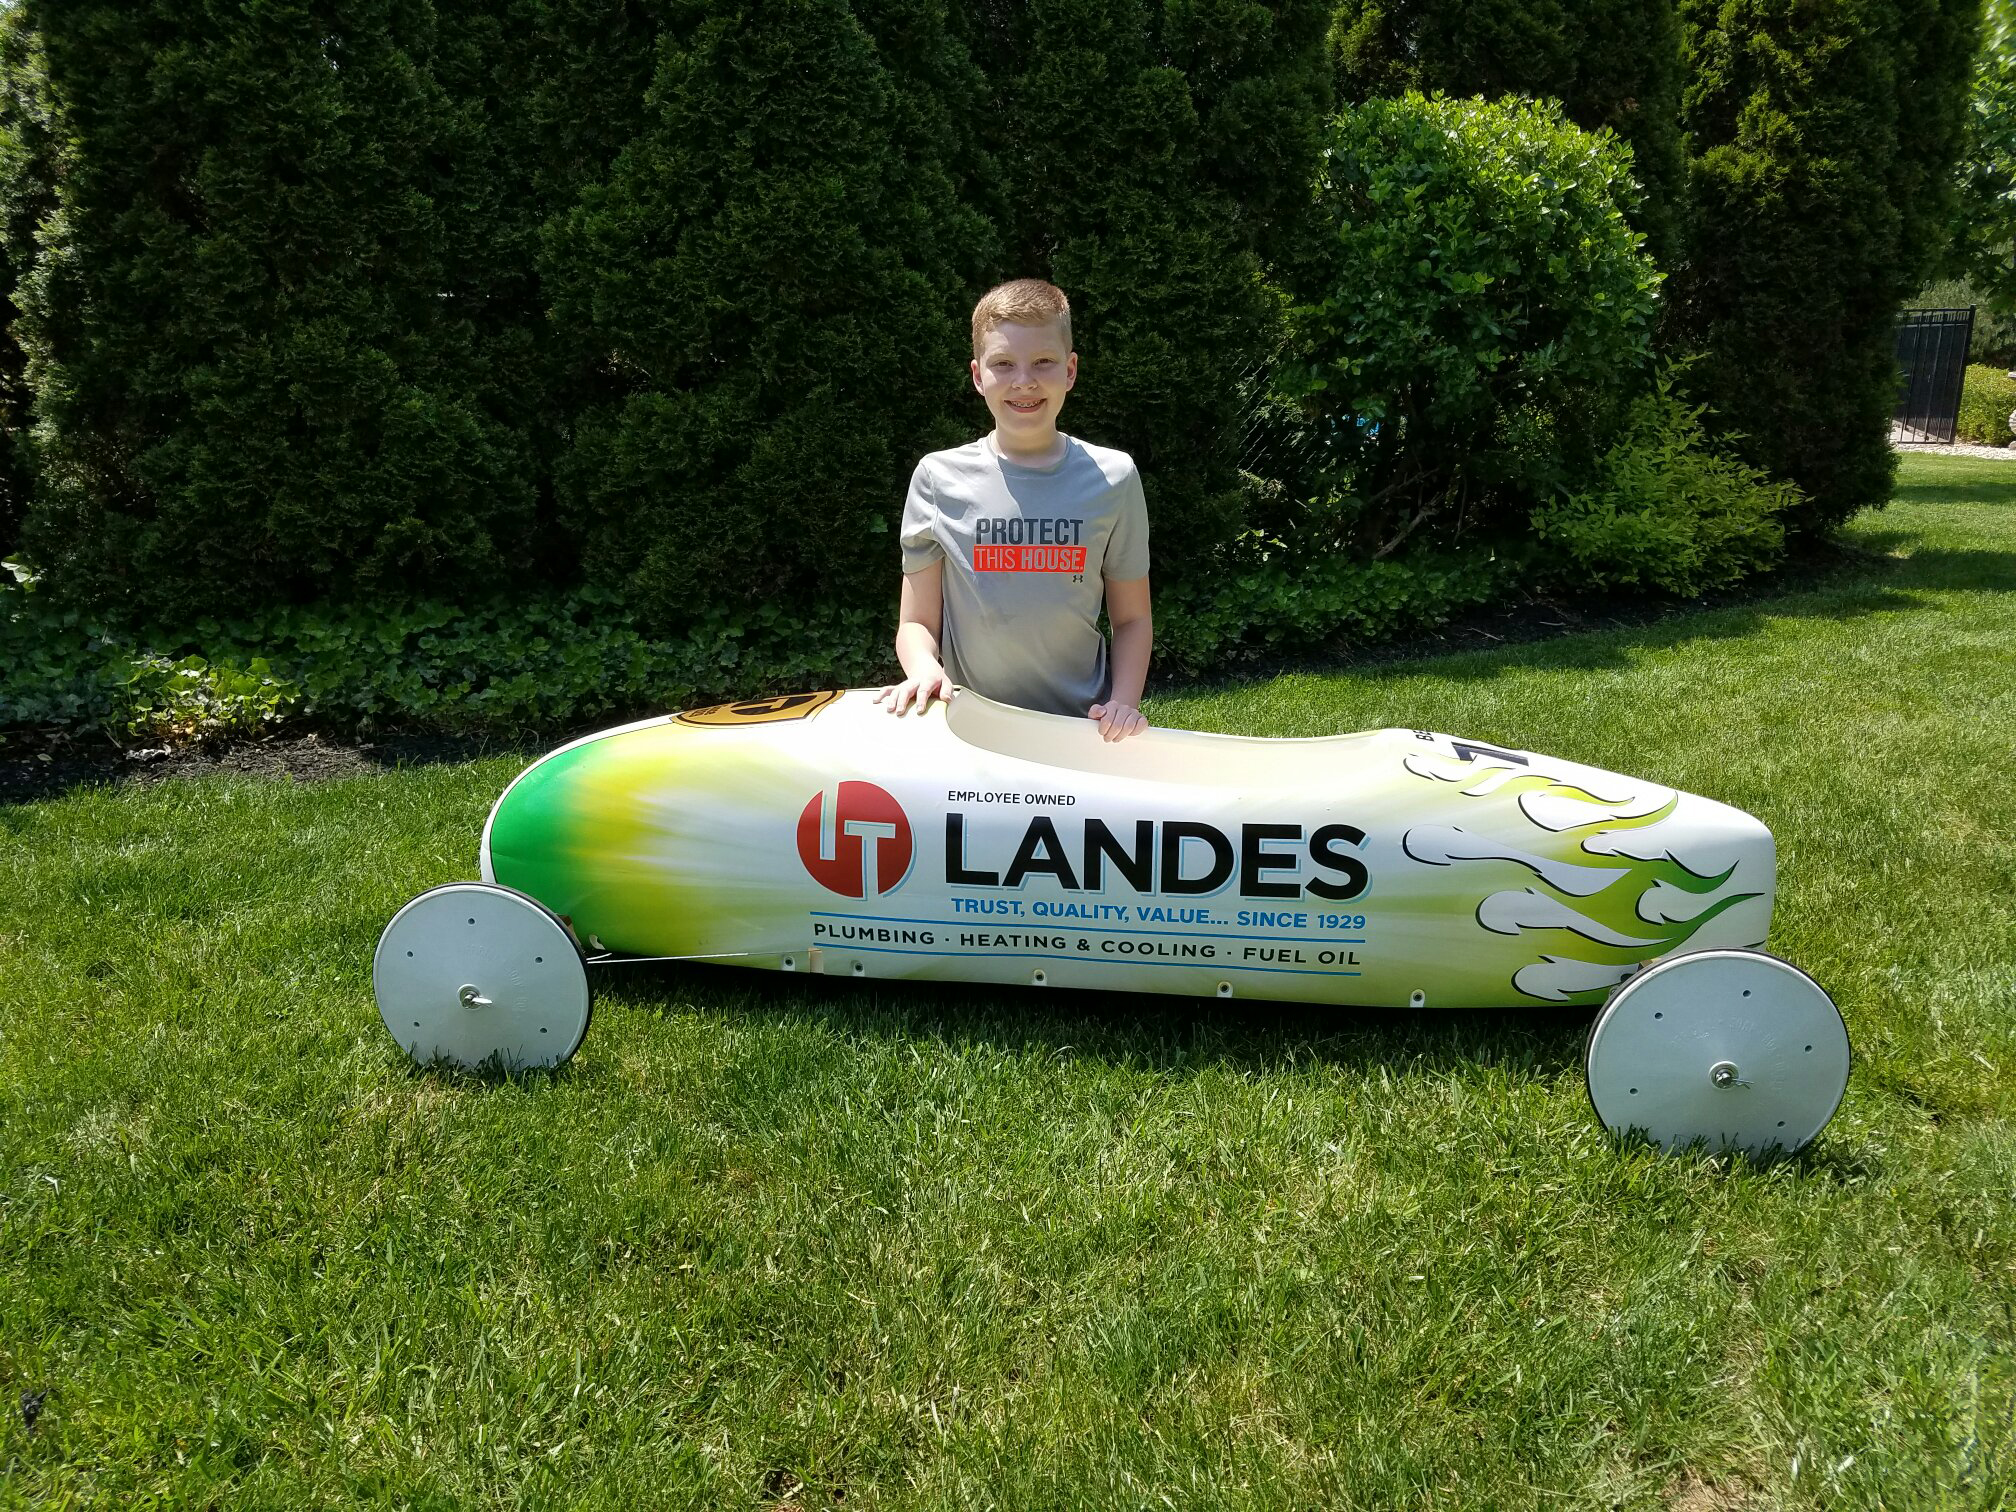 IT Landes Soap Box